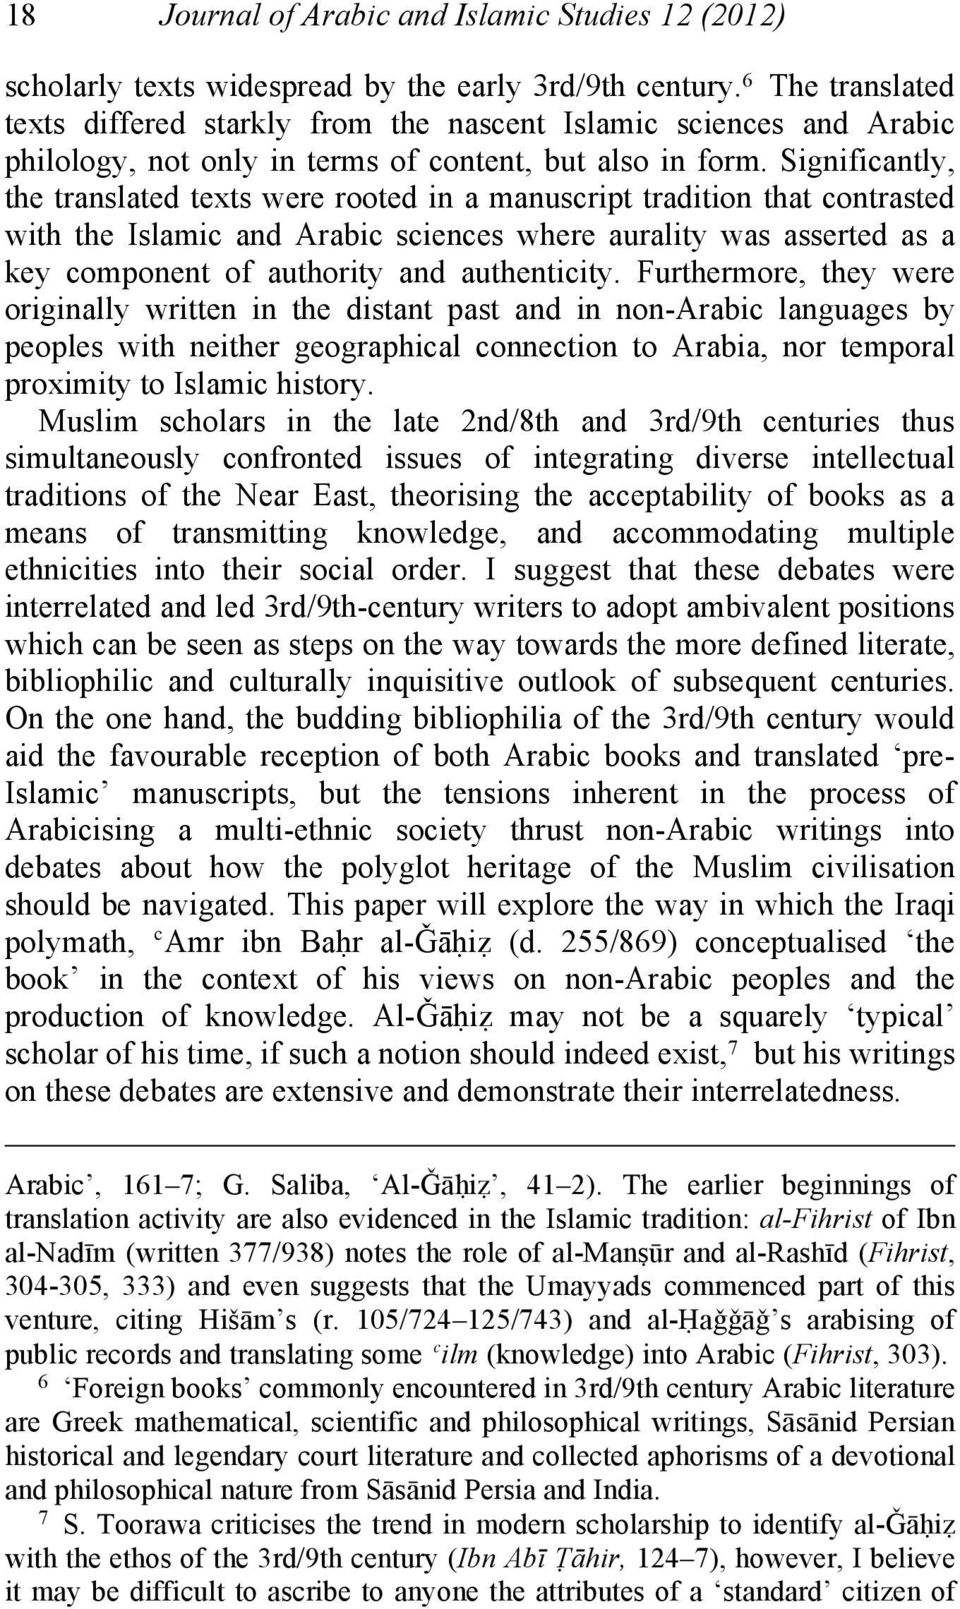 Significantly, the translated texts were rooted in a manuscript tradition that contrasted with the Islamic and Arabic sciences where aurality was asserted as a key component of authority and